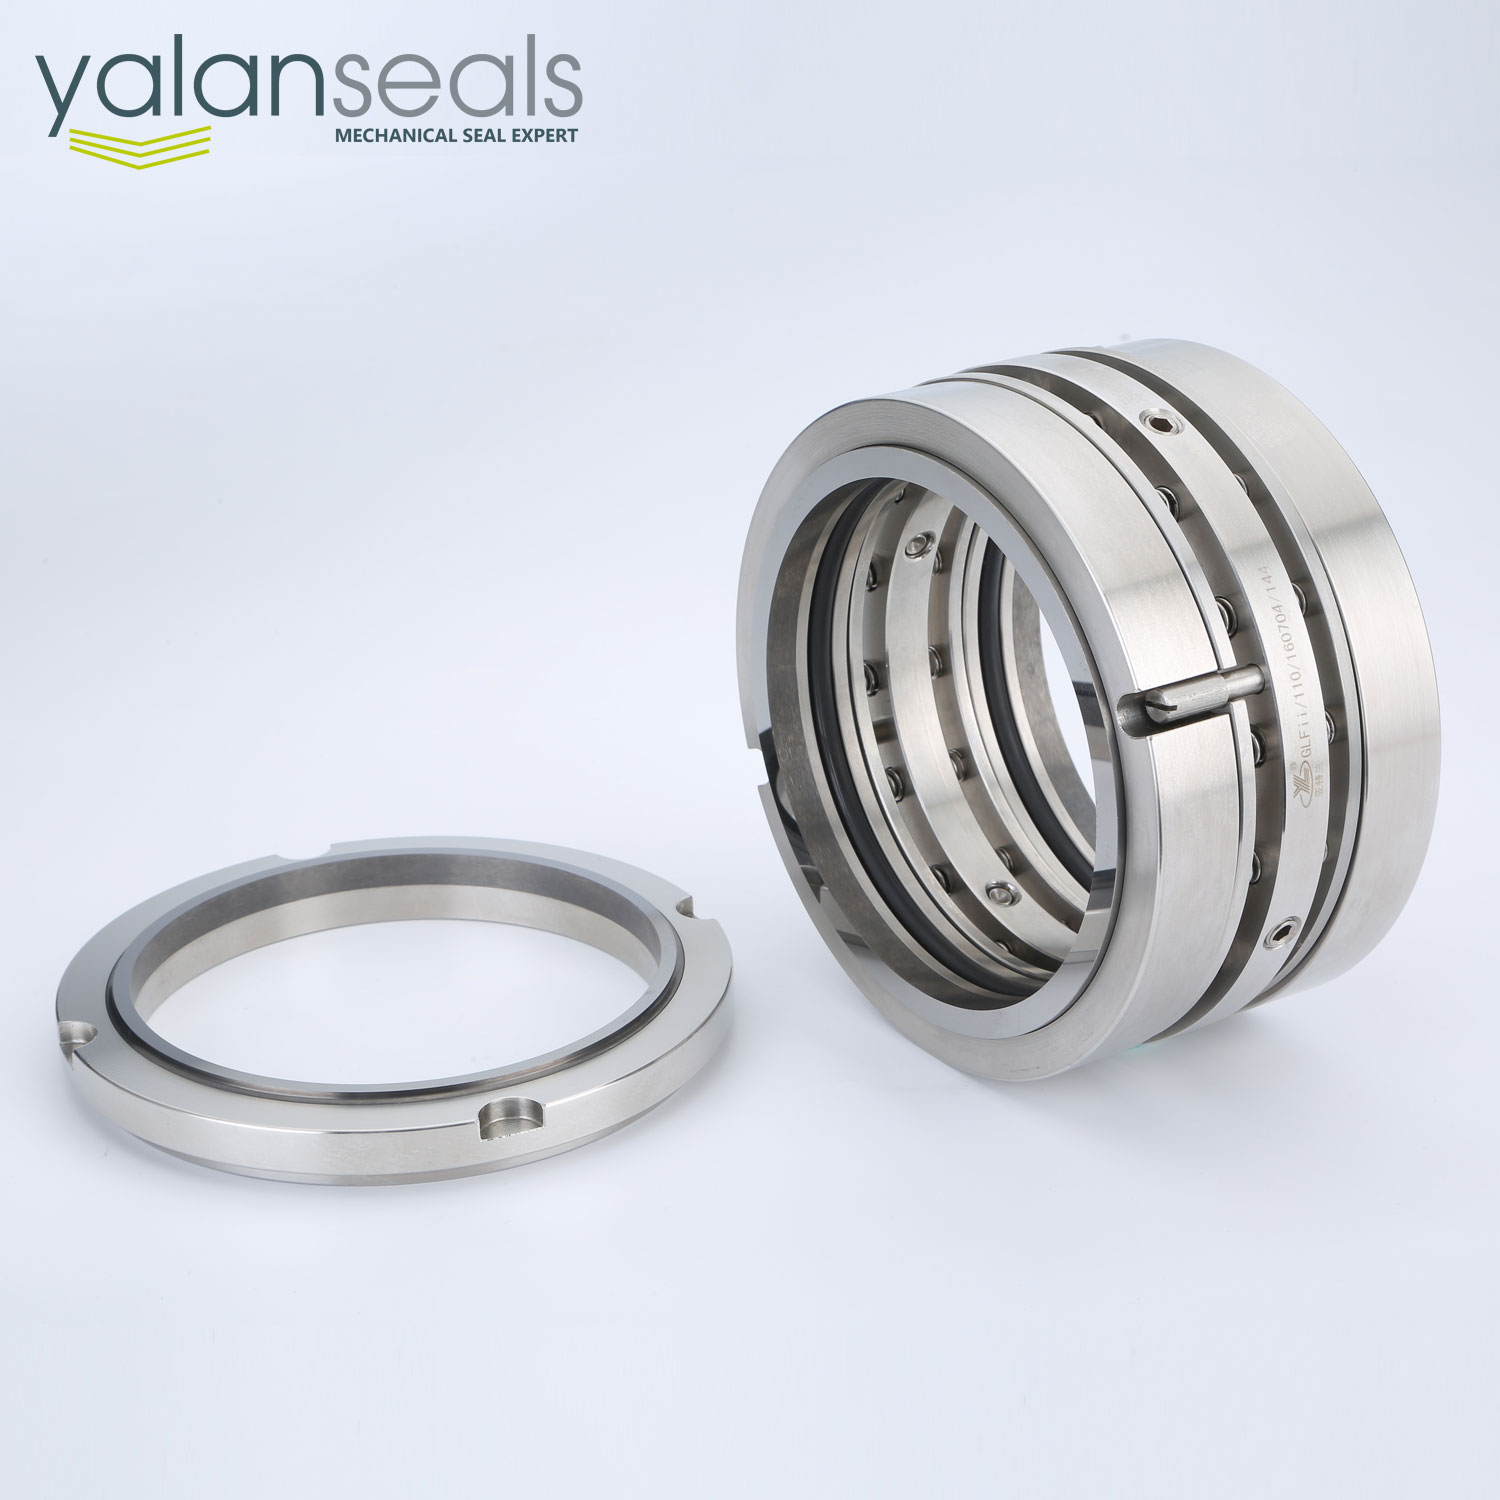 GLF Mechanical Seal for Grundfos Heavy Duty Submerged Sewage Pumps